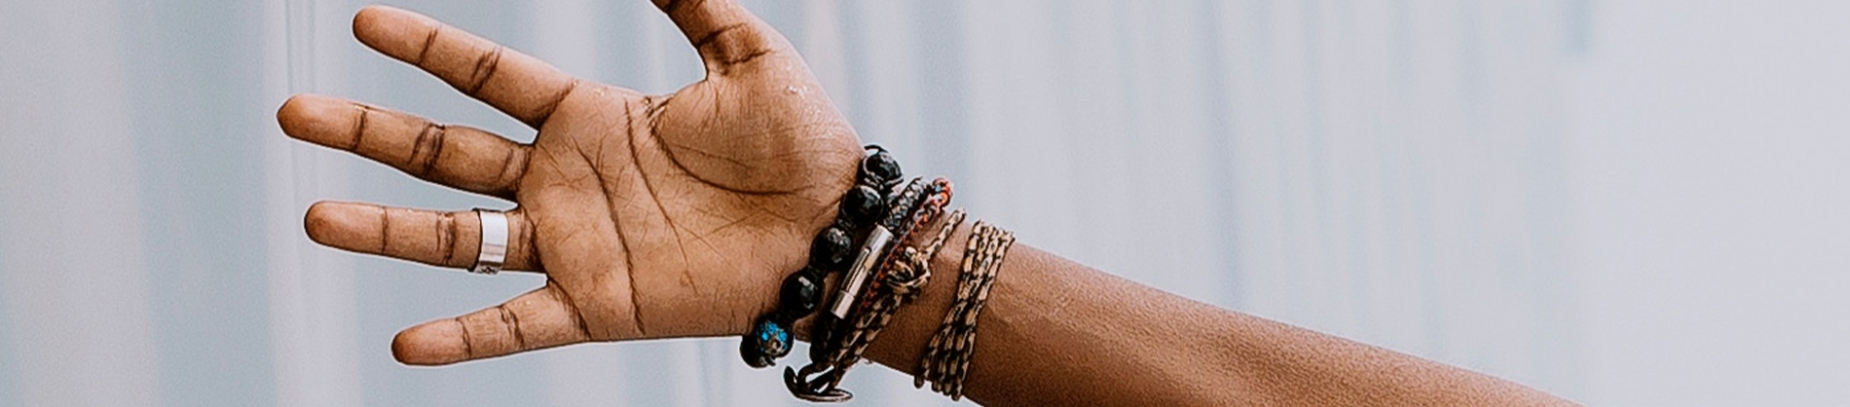 A hand reaching out with bracelets on their wrist